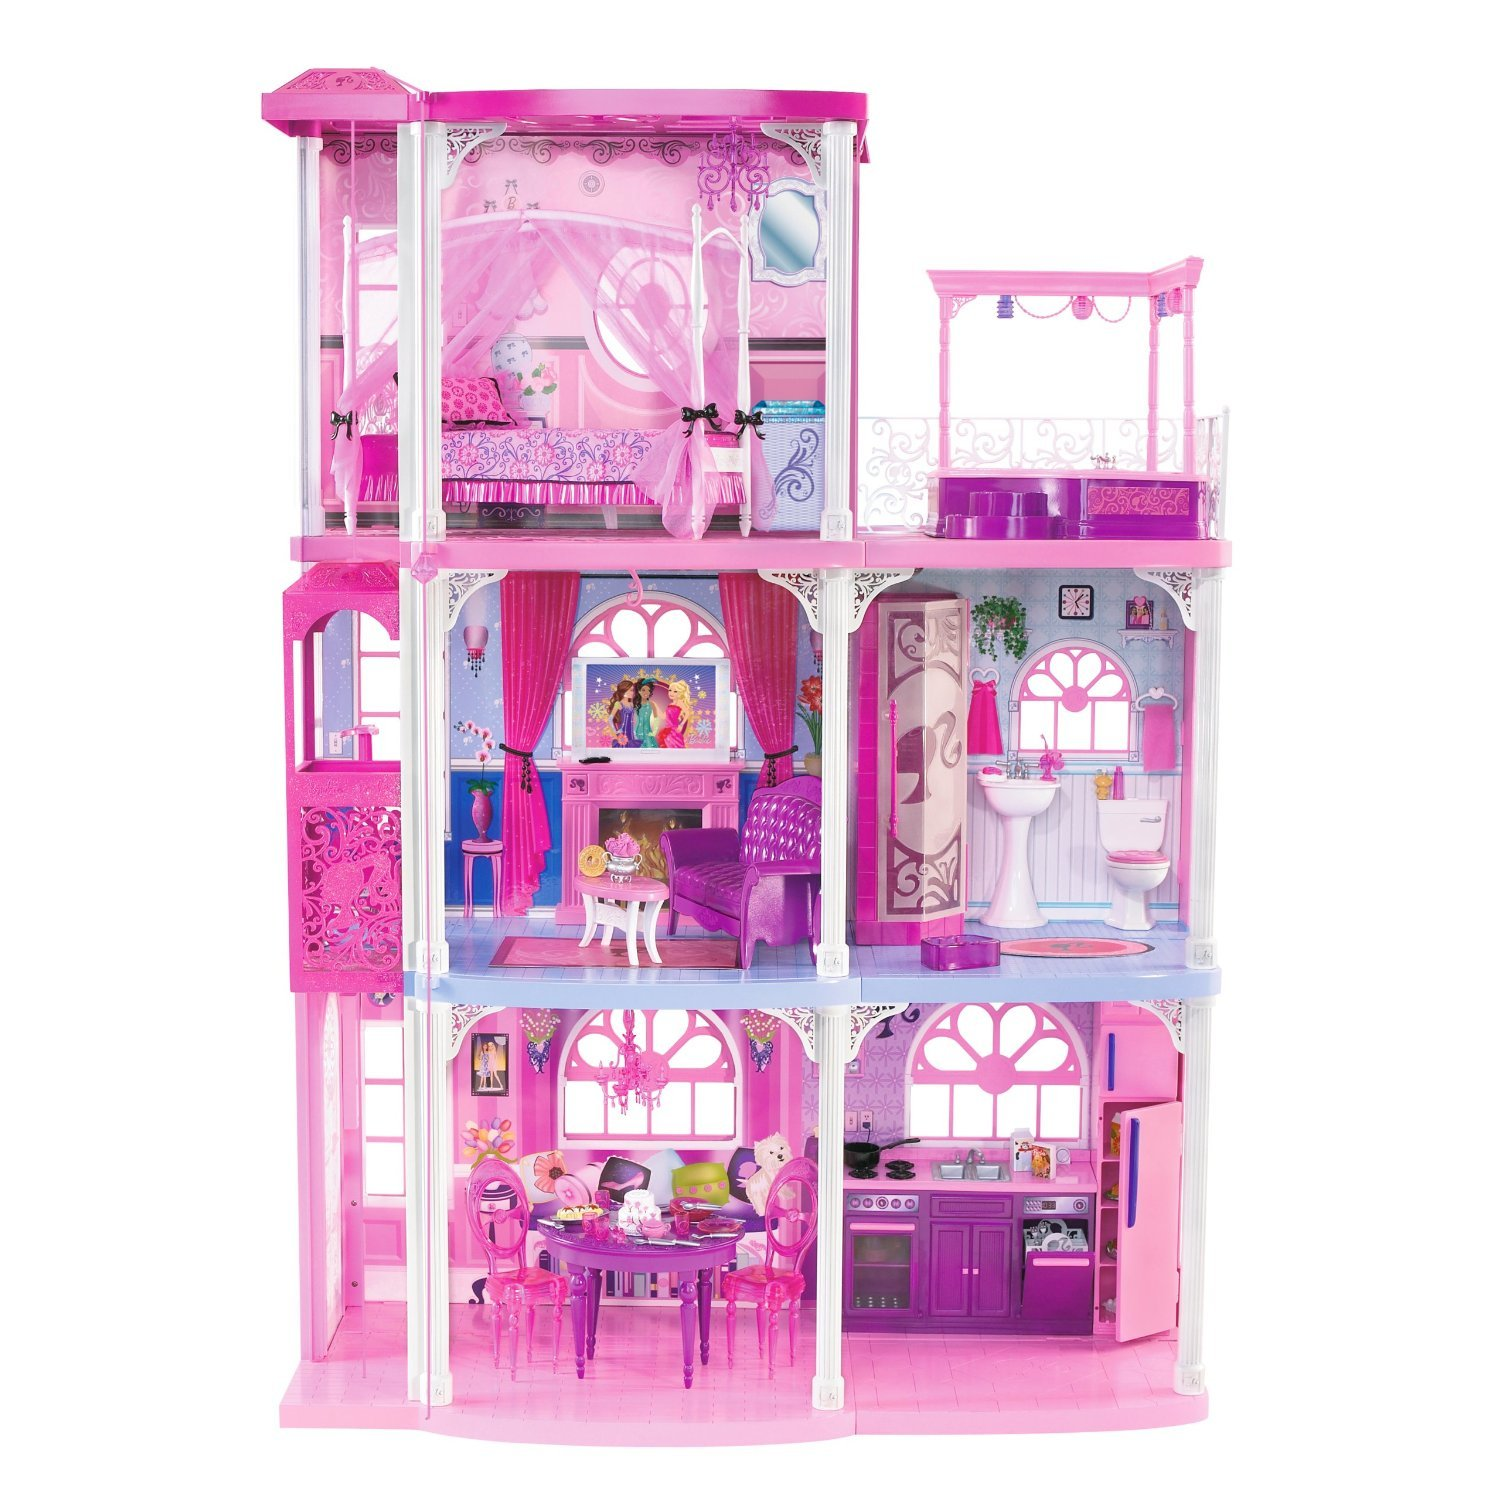 81eqdmUlX9L._SL1500_ amazon com barbie pink 3 story dream townhouse toys & games Barbie Dreamhouse at bayanpartner.co